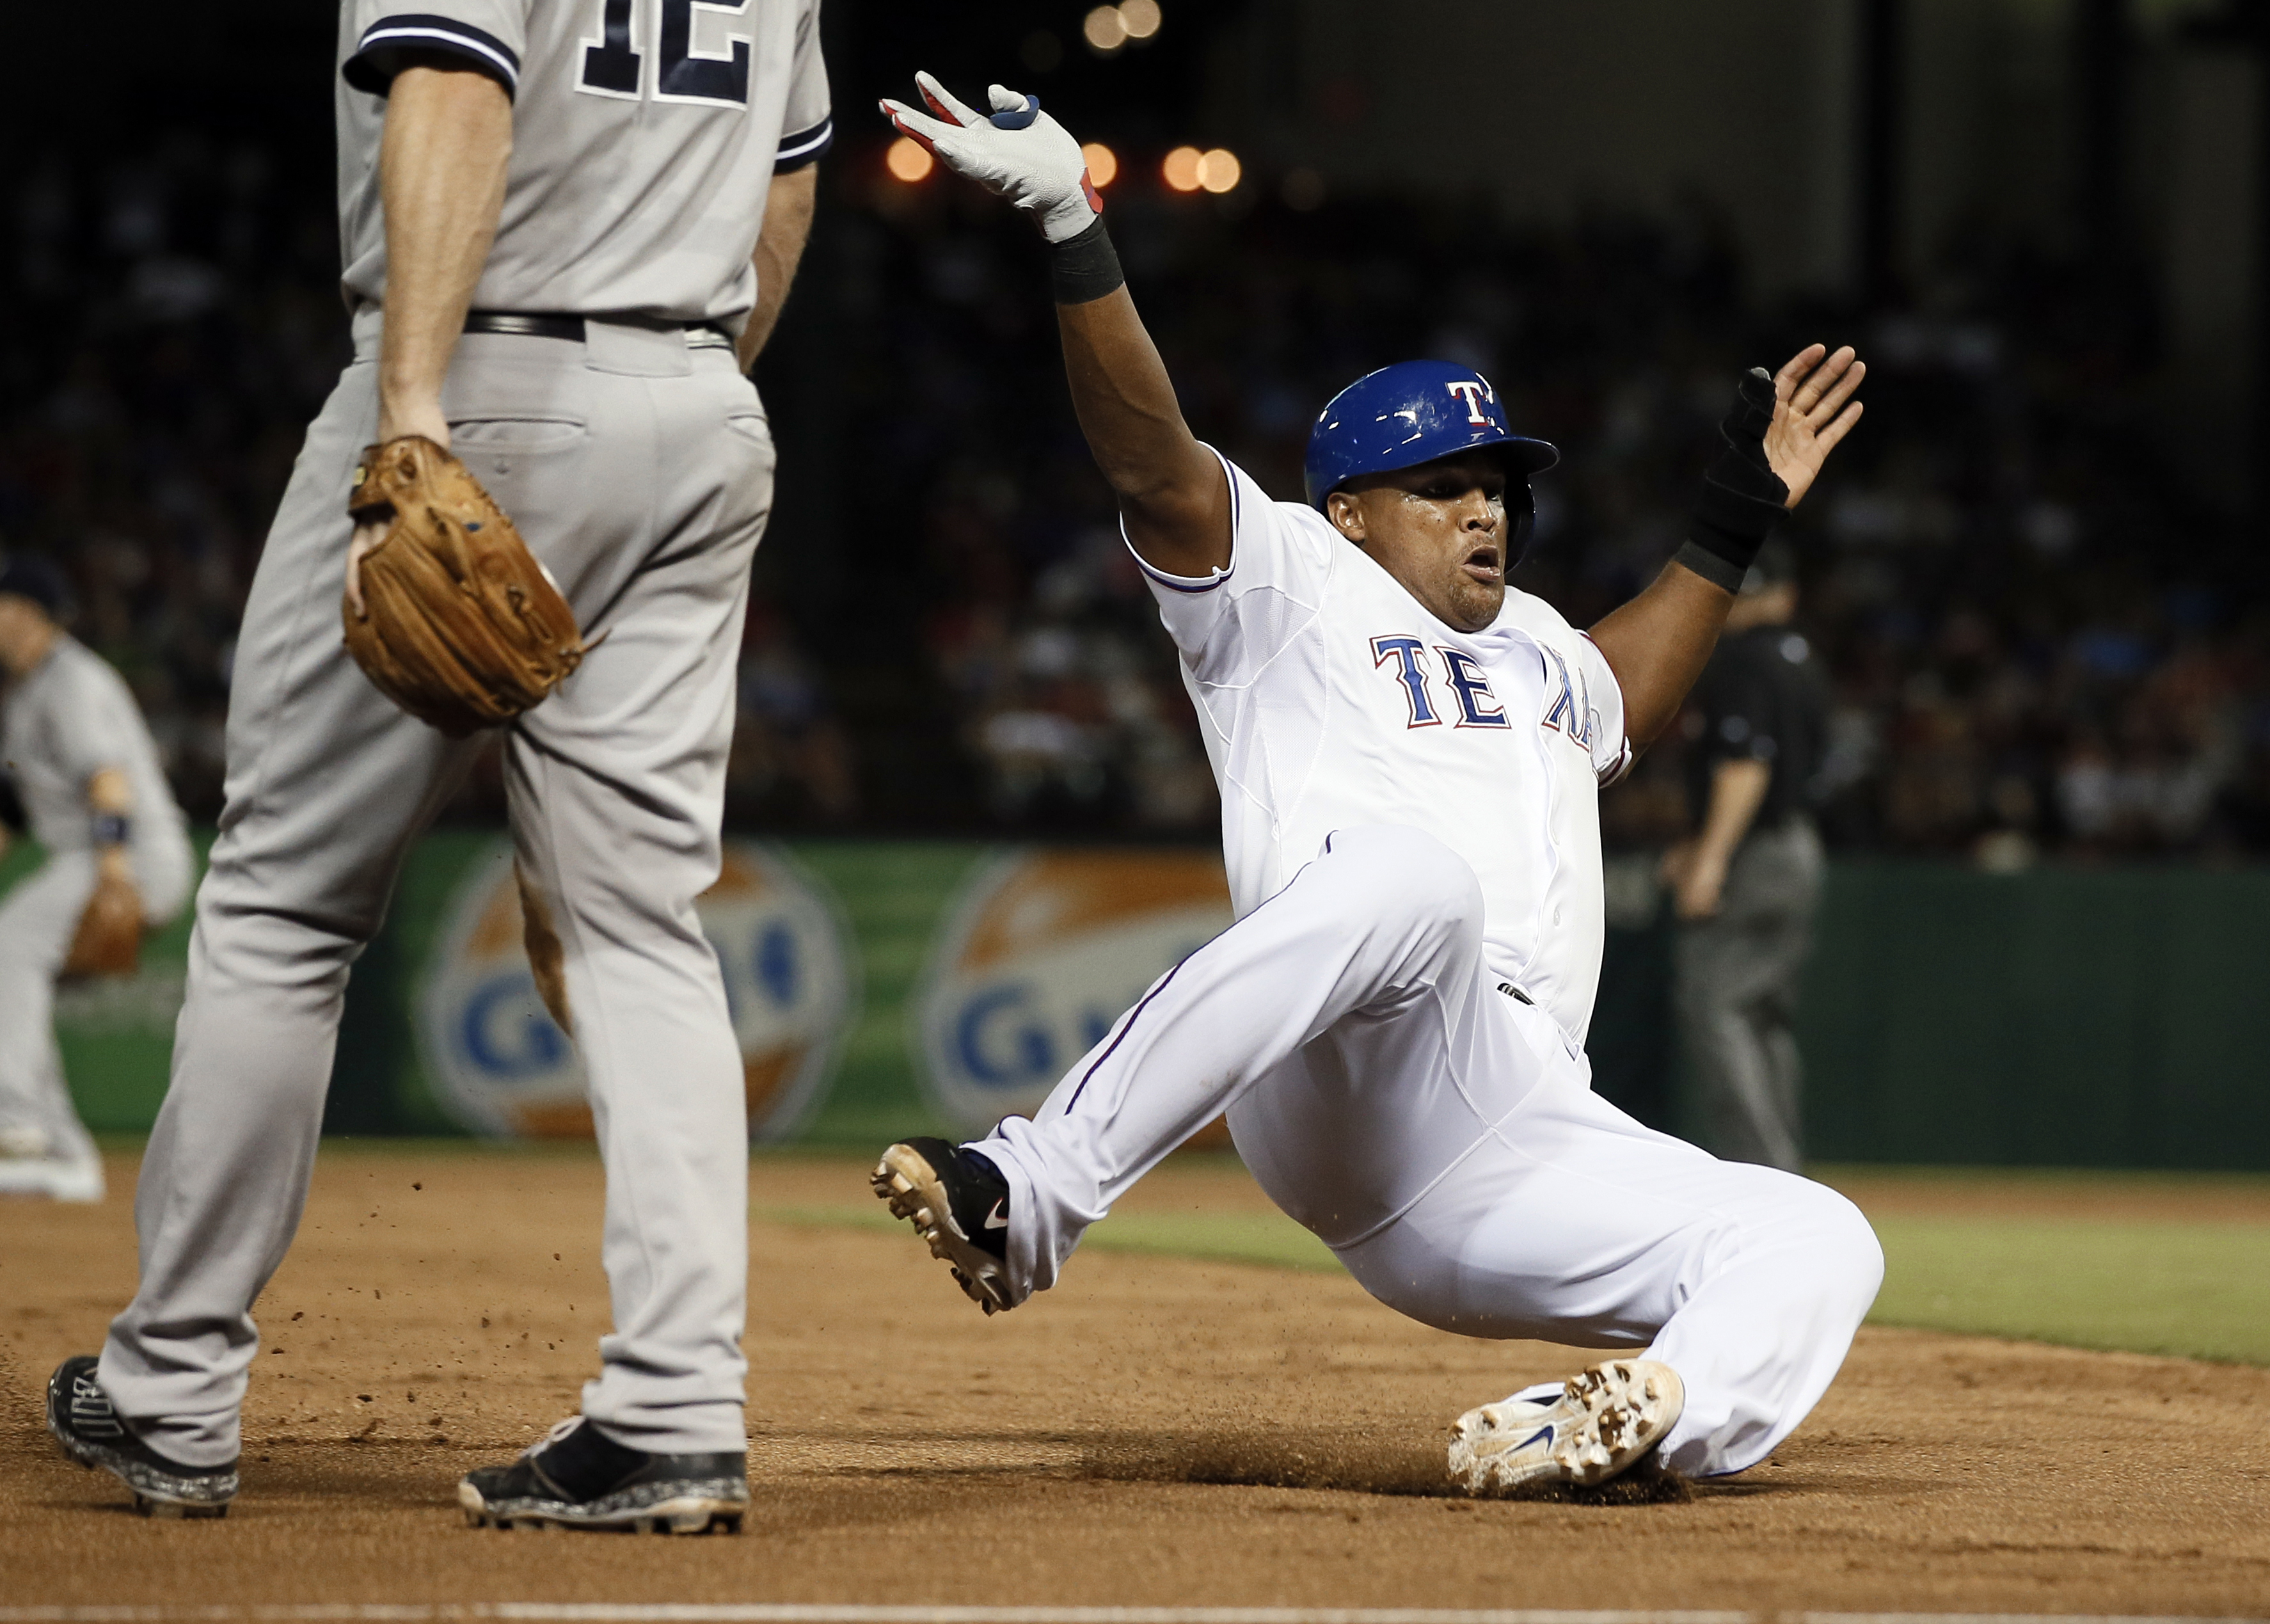 New York Yankees' Chase Headley (12) stands by the bag as Texas Rangers' Adrian Beltre, right, advances to third on a single by Mitch Moreland in the fifth inning of a baseball game Wednesday, July 29, 2015, in Arlington, Texas. (AP Photo/Tony Gutierrez)